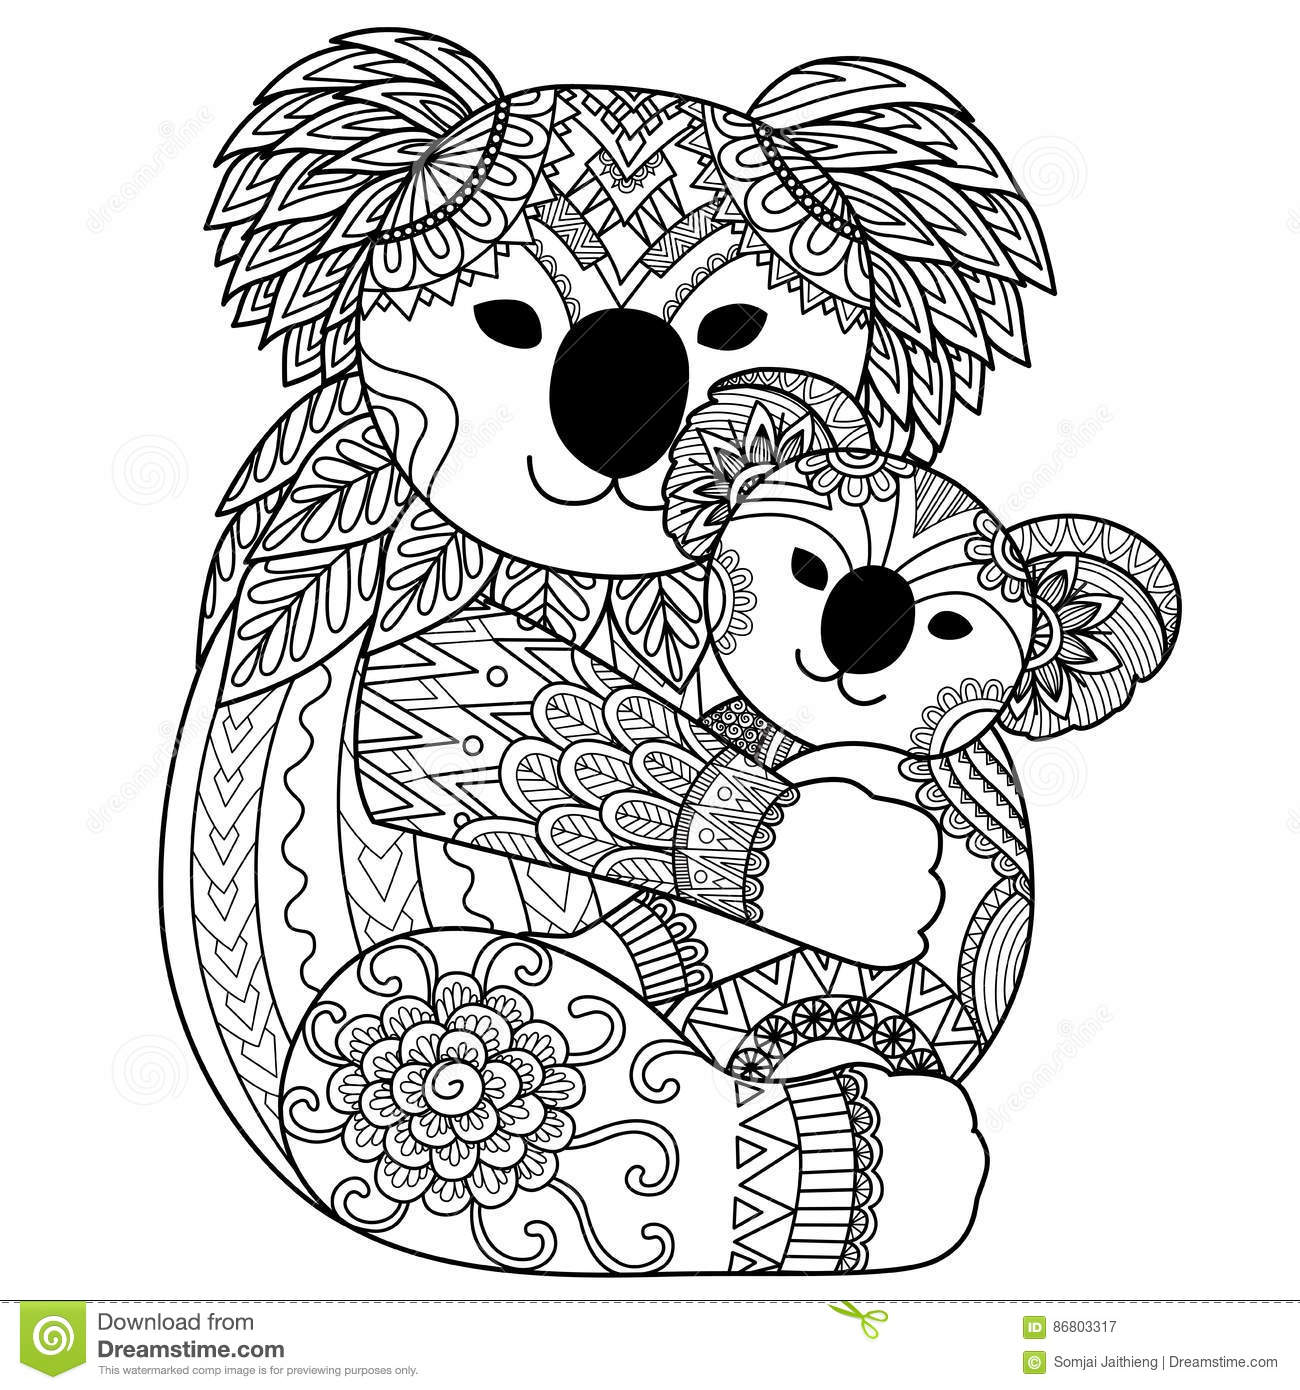 The zoology coloring book - Zoology Coloring Book Download Koala Mother Cuddling Her Baby Stock Vector Image